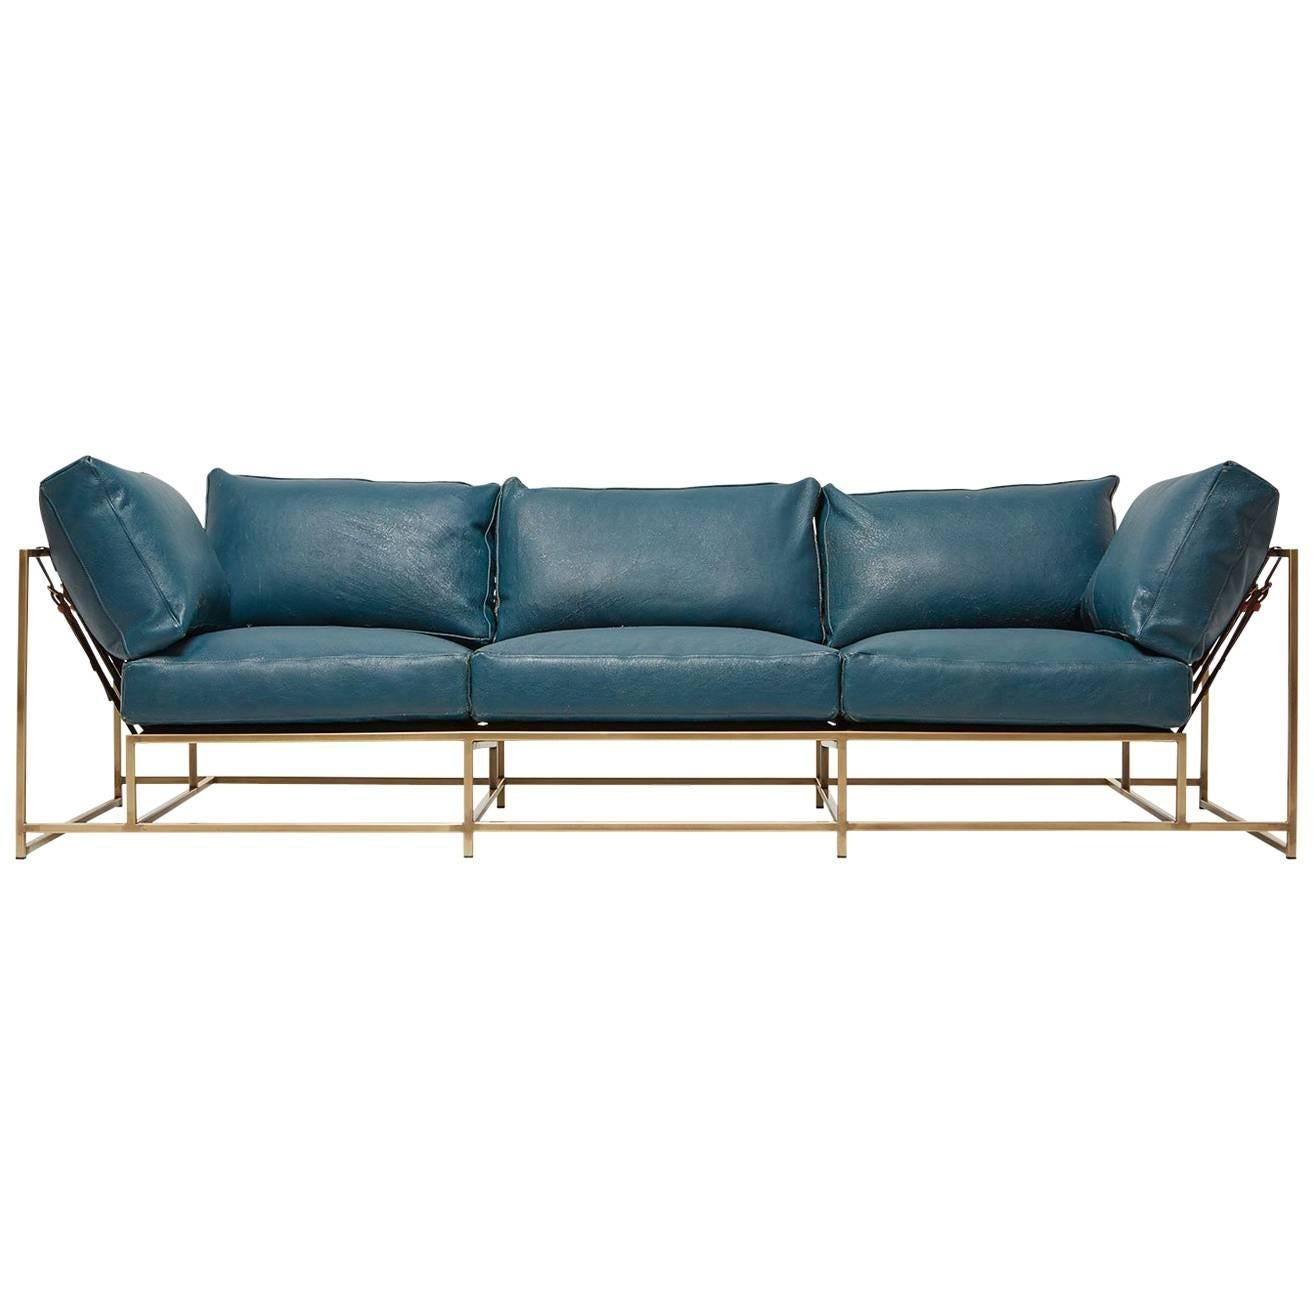 teal leather and light antique brass sofa for sale at 1stdibs rh 1stdibs co uk Teal Blue Sofa with Pillows teal velvet sofa for sale